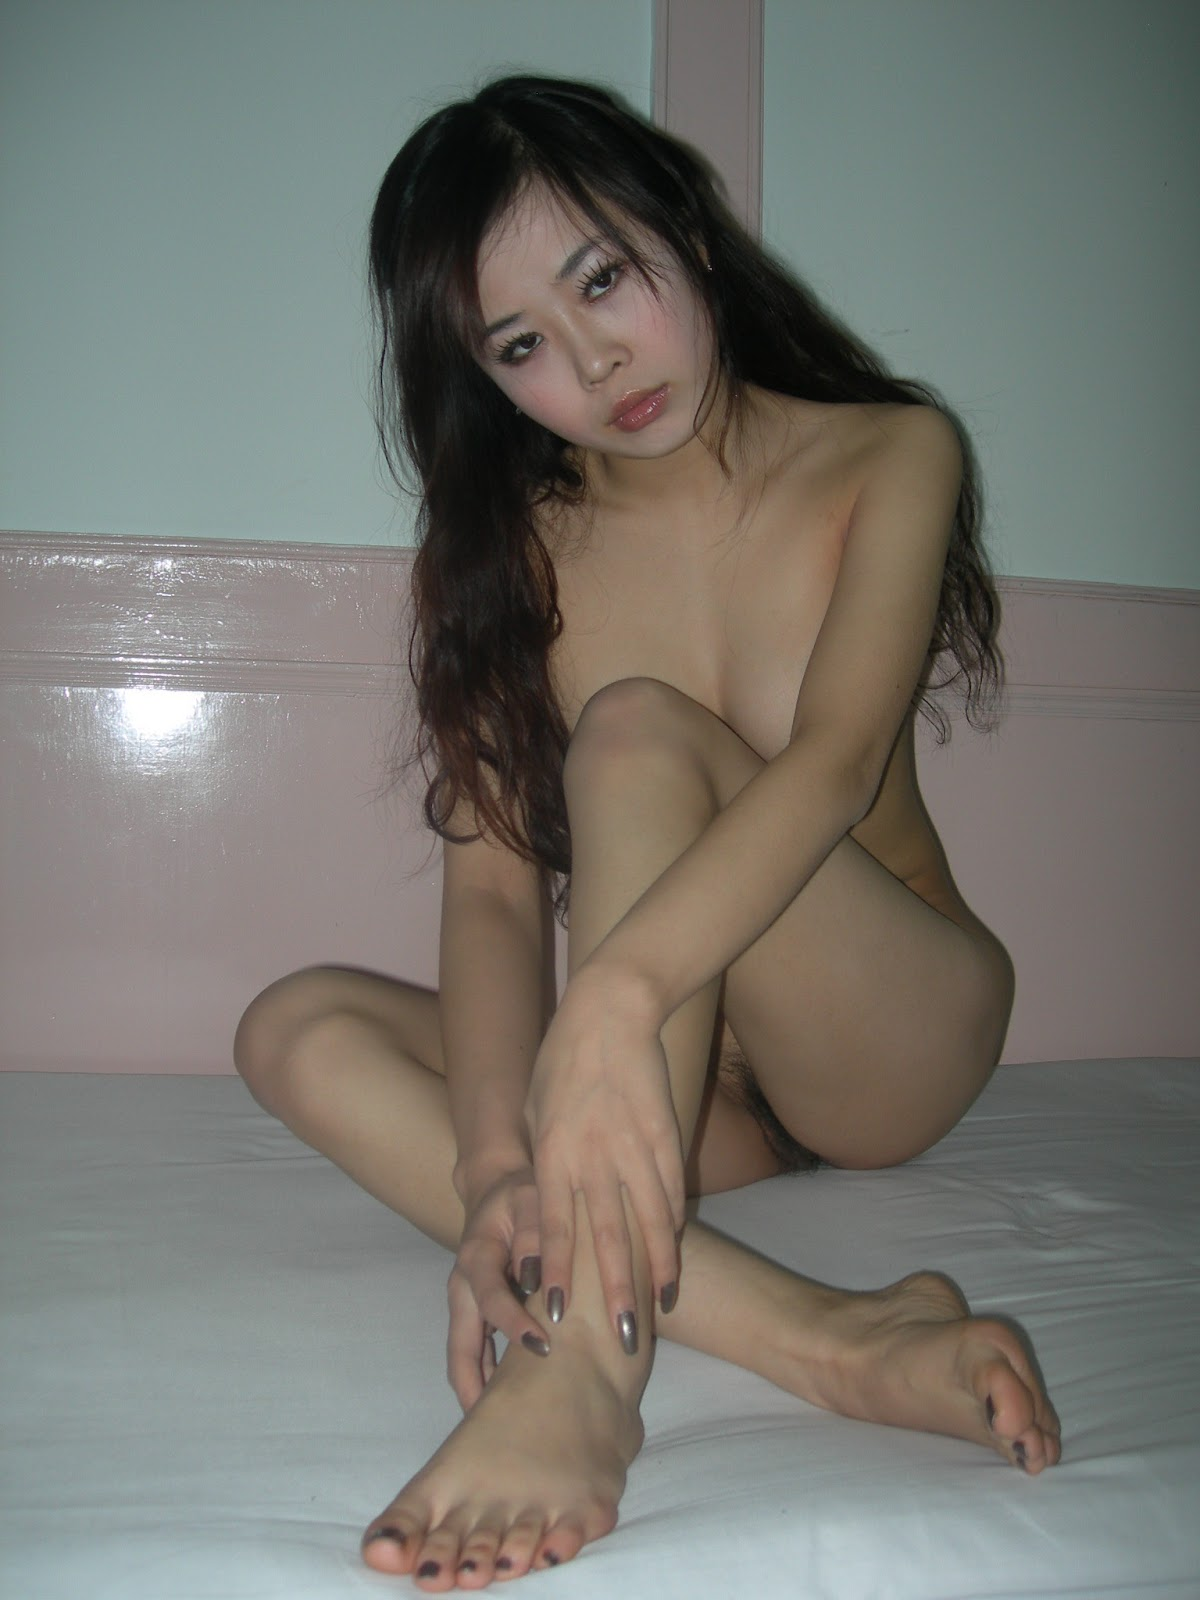 Hot sexy naked taiwan women situation familiar